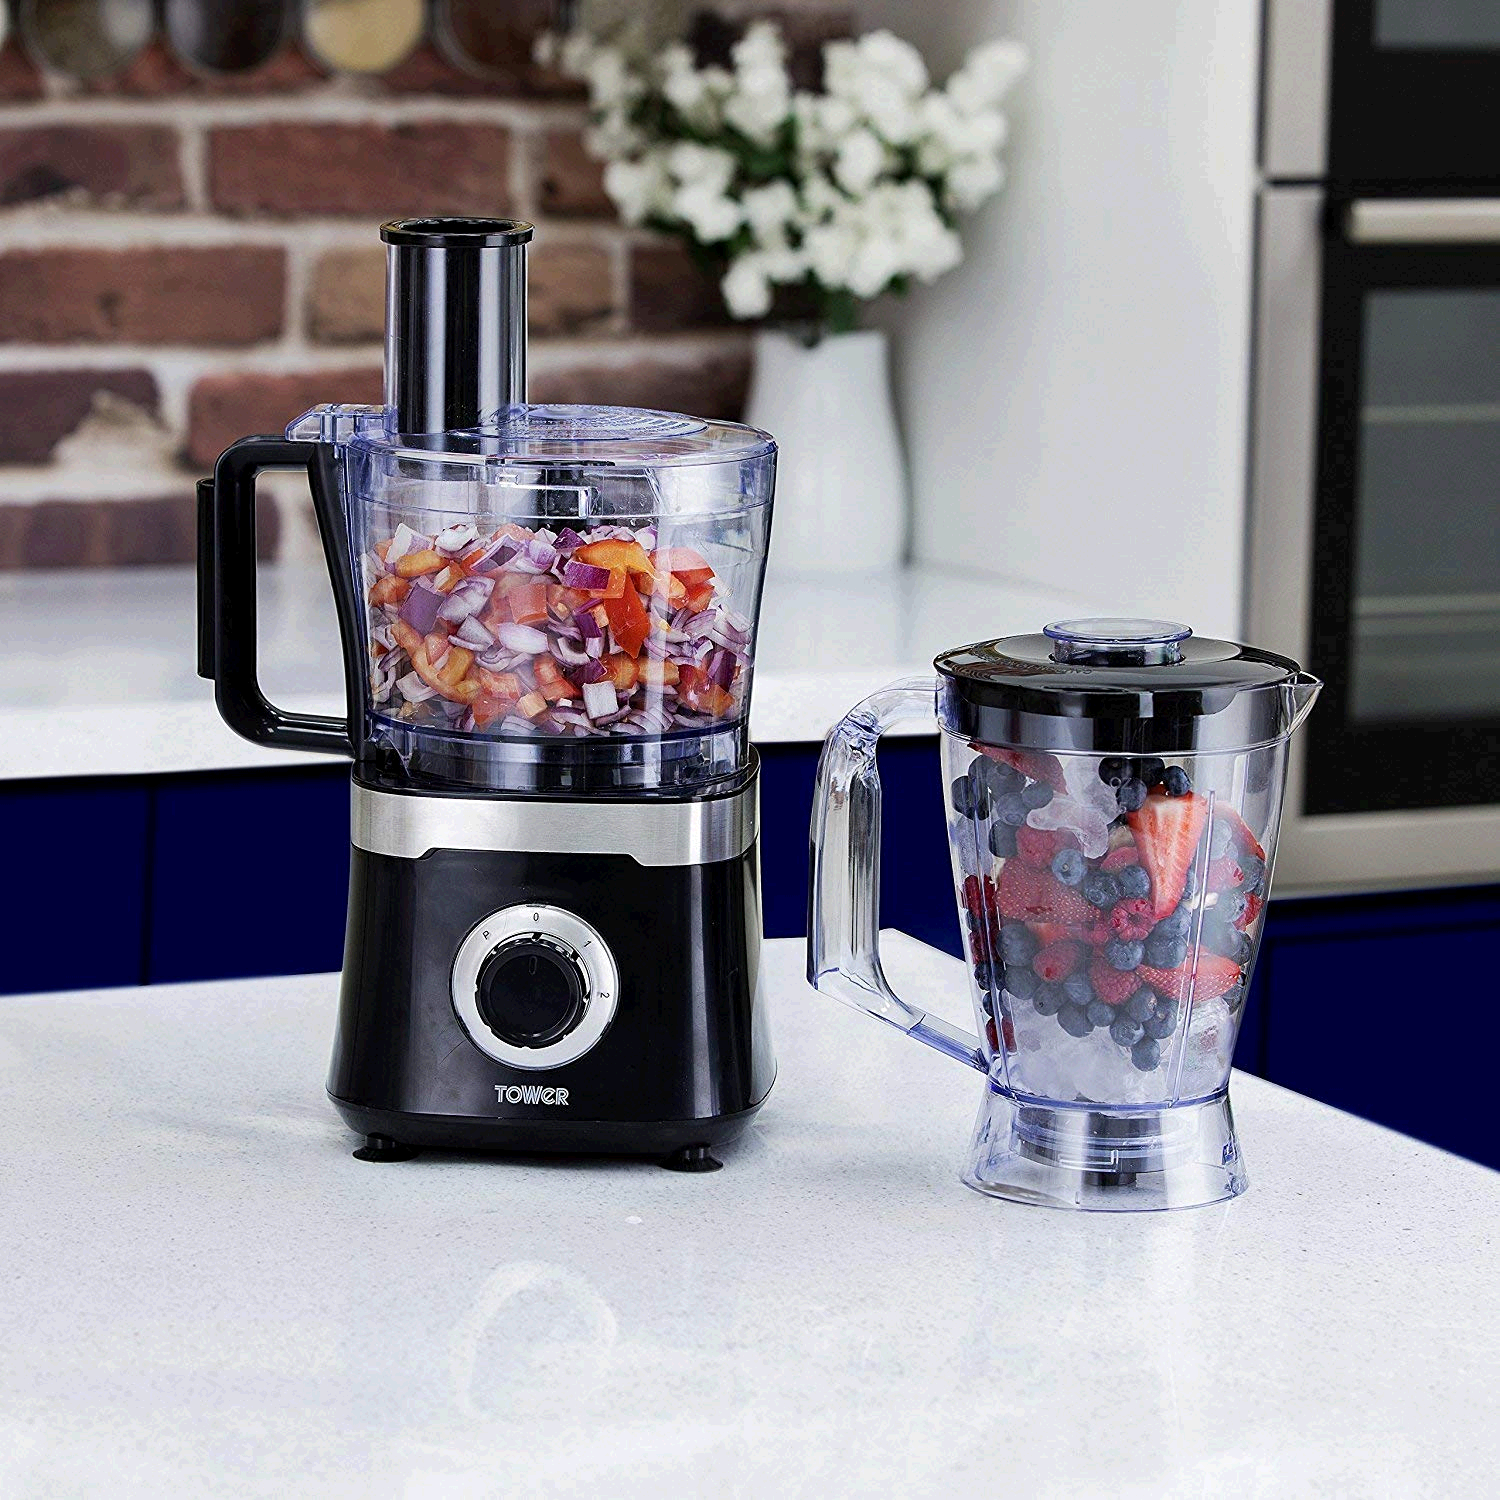 Tower Food Processor with 1.4 Litre Blending Jug and 1.5 Bowl 600w Black